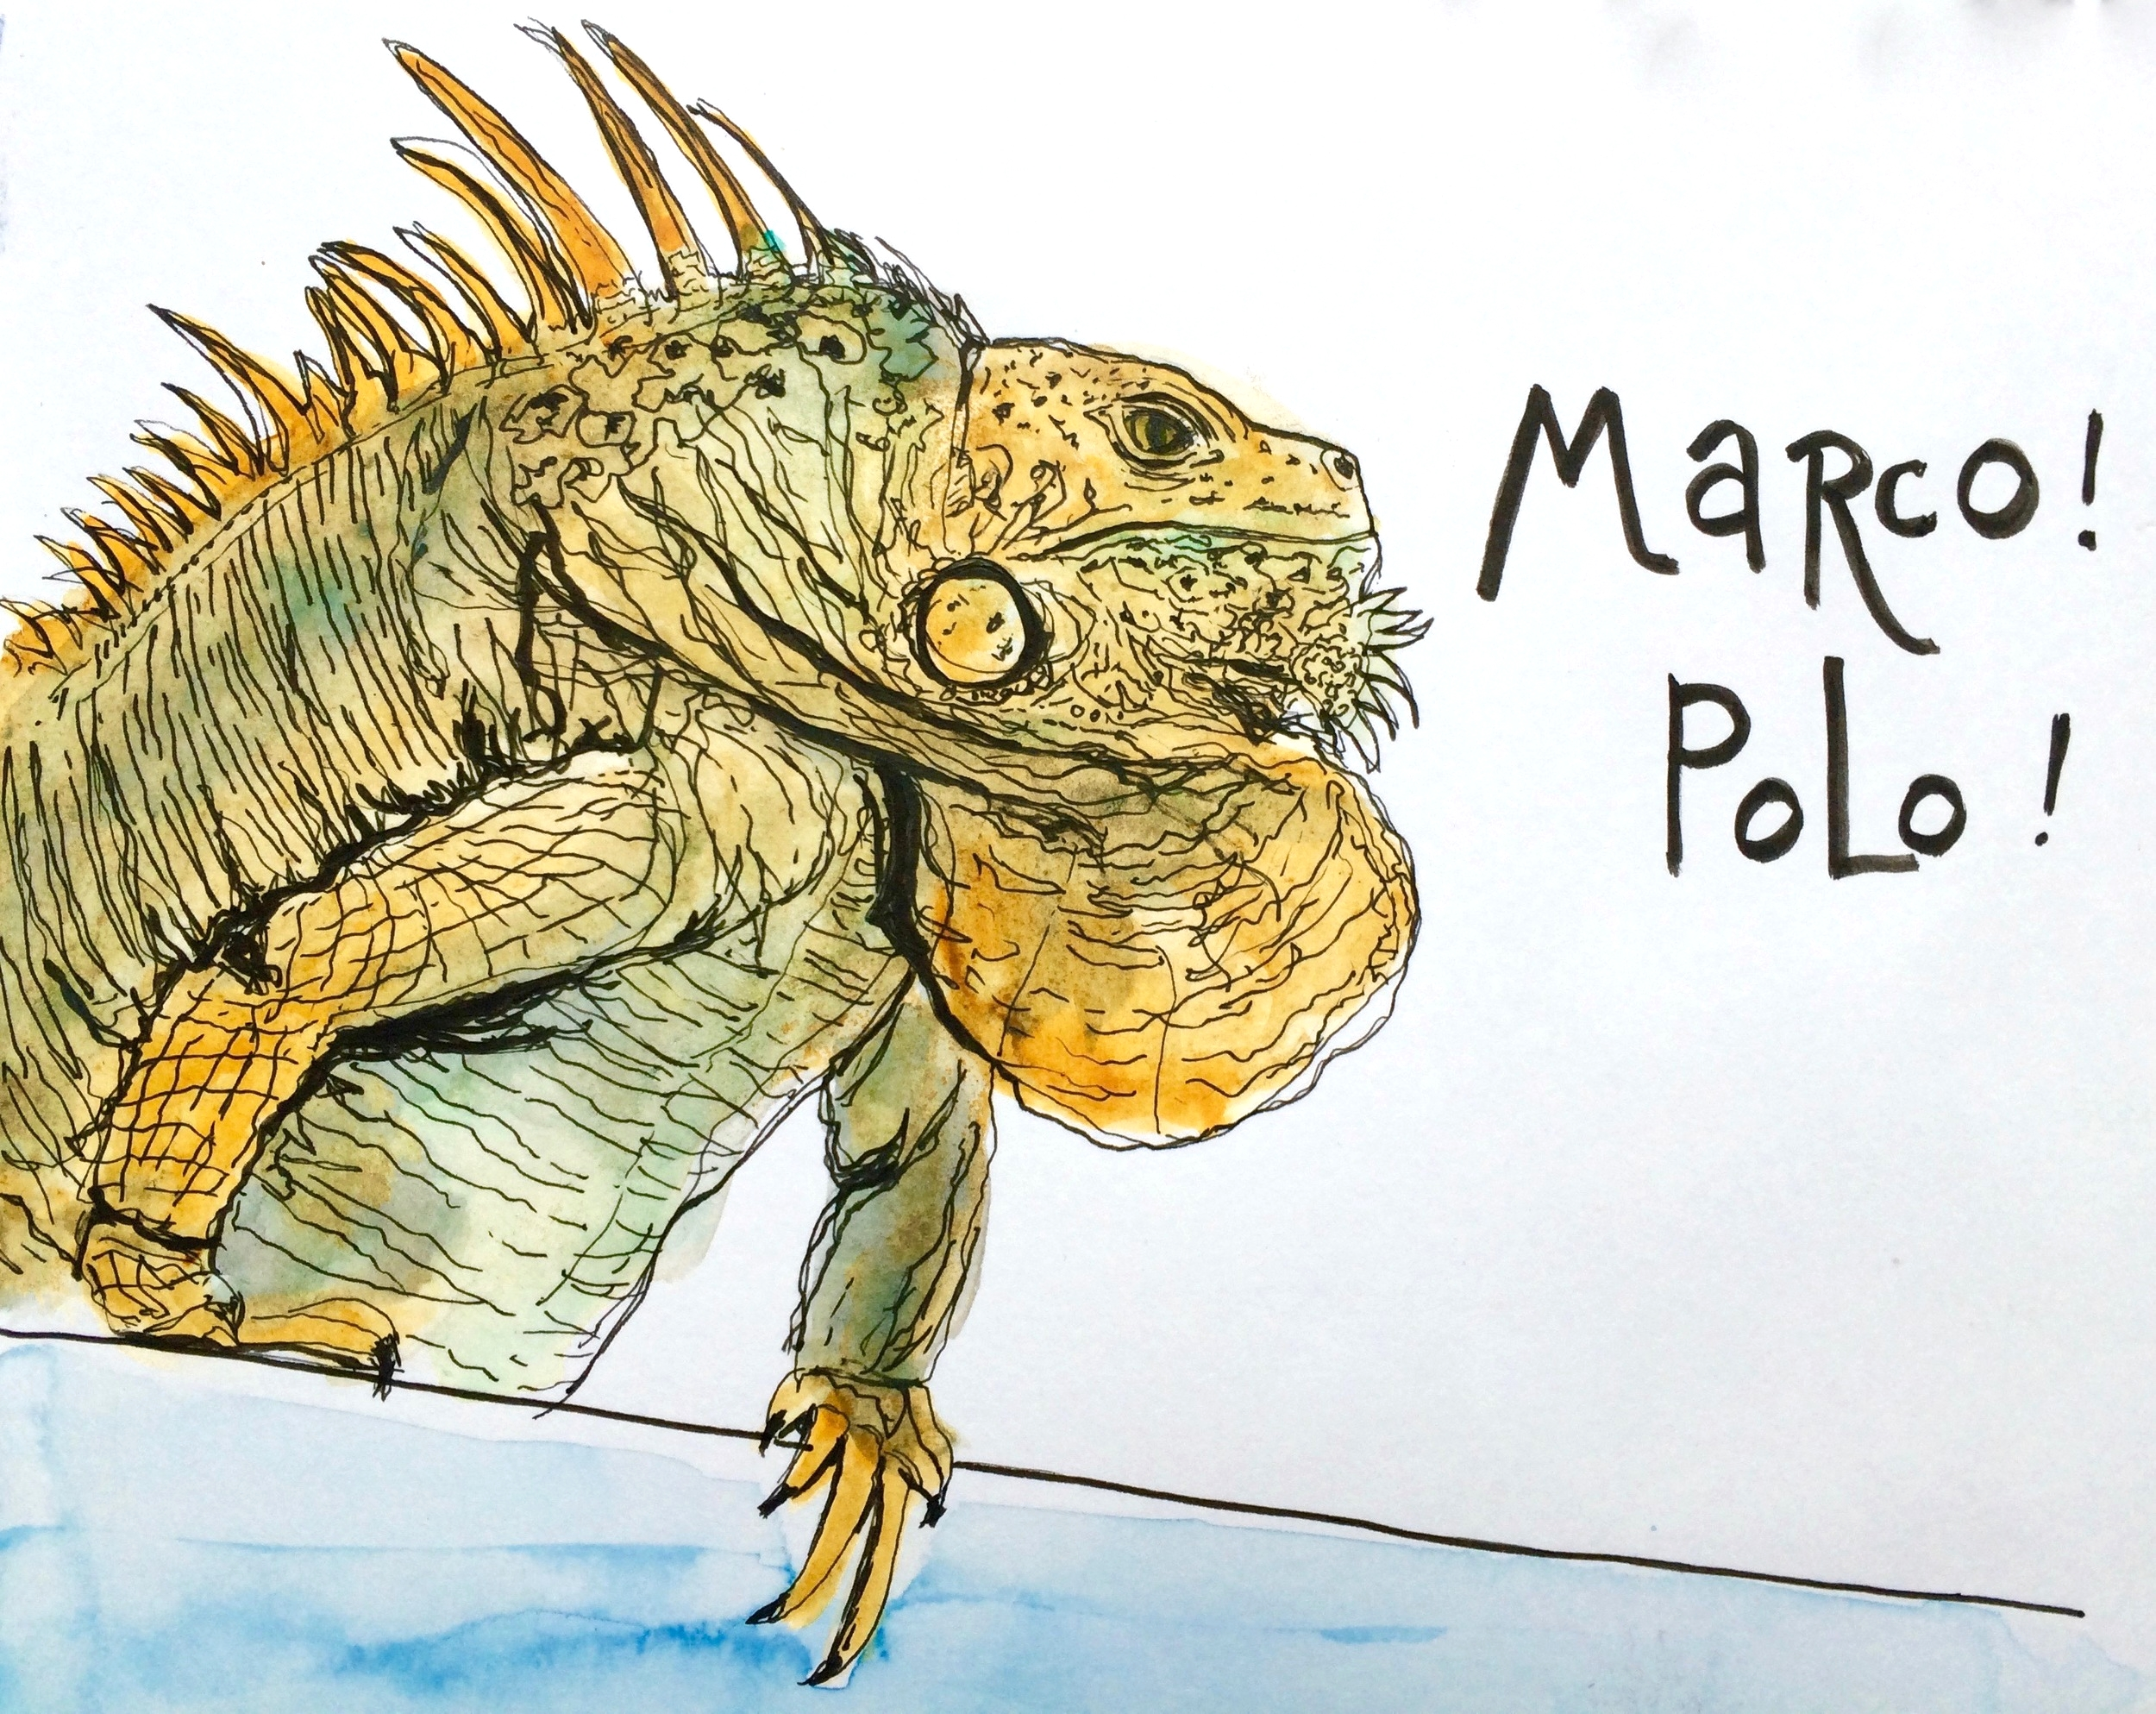 This impressive iguana showed up at the pool. I later heard that his name is Ferdinand. About 3 feet long, he was an impressive Marco to my Polo!